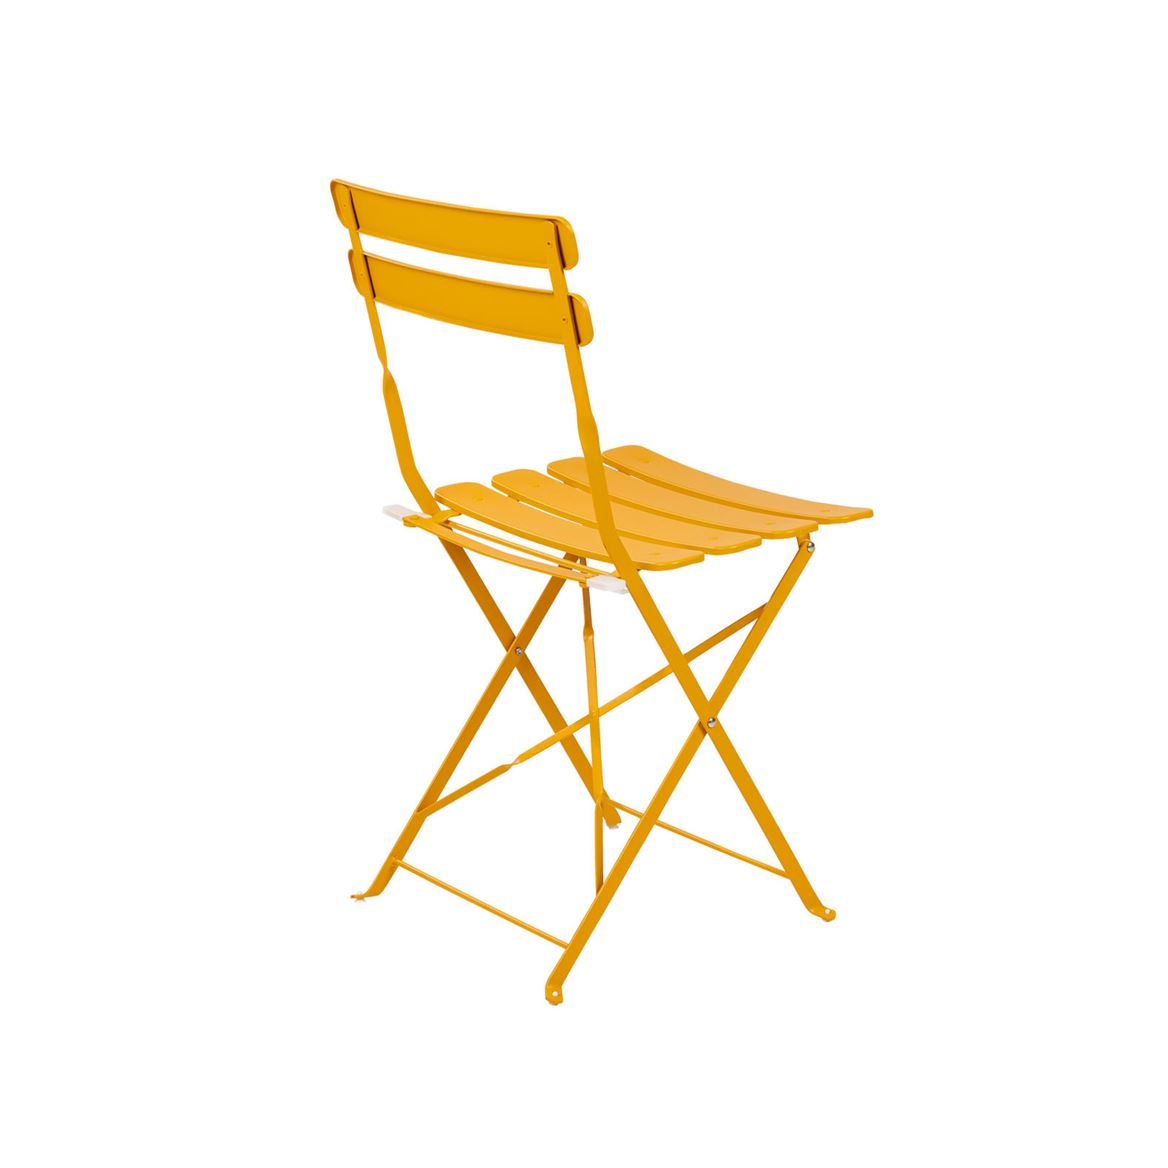 IMPERIAL Chaise bistrot jaune H 82 x Larg. 42 x P 46,5 cm_imperial-chaise-bistrot-jaune-h-82-x-larg--42-x-p-46,5-cm